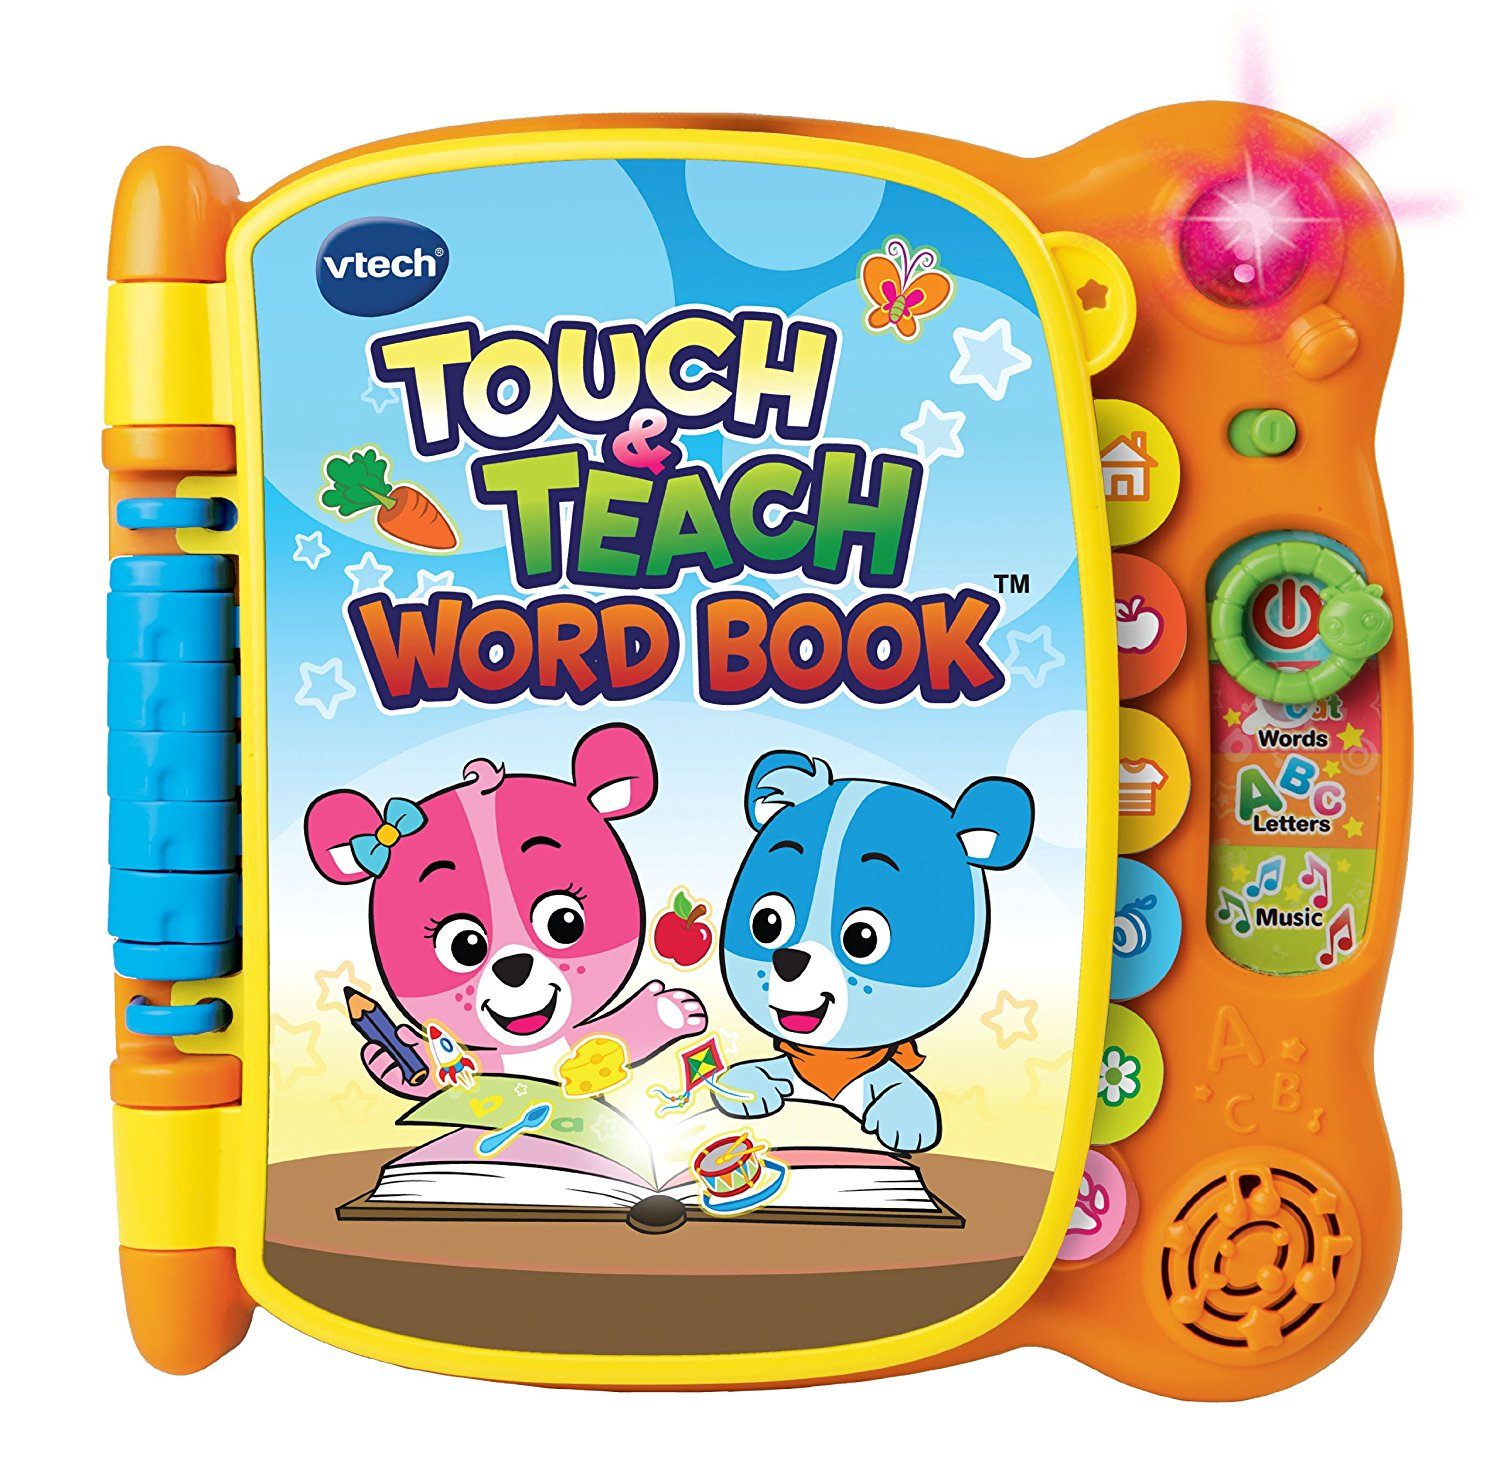 Sách nhựa VTech Touch and Teach Word Book